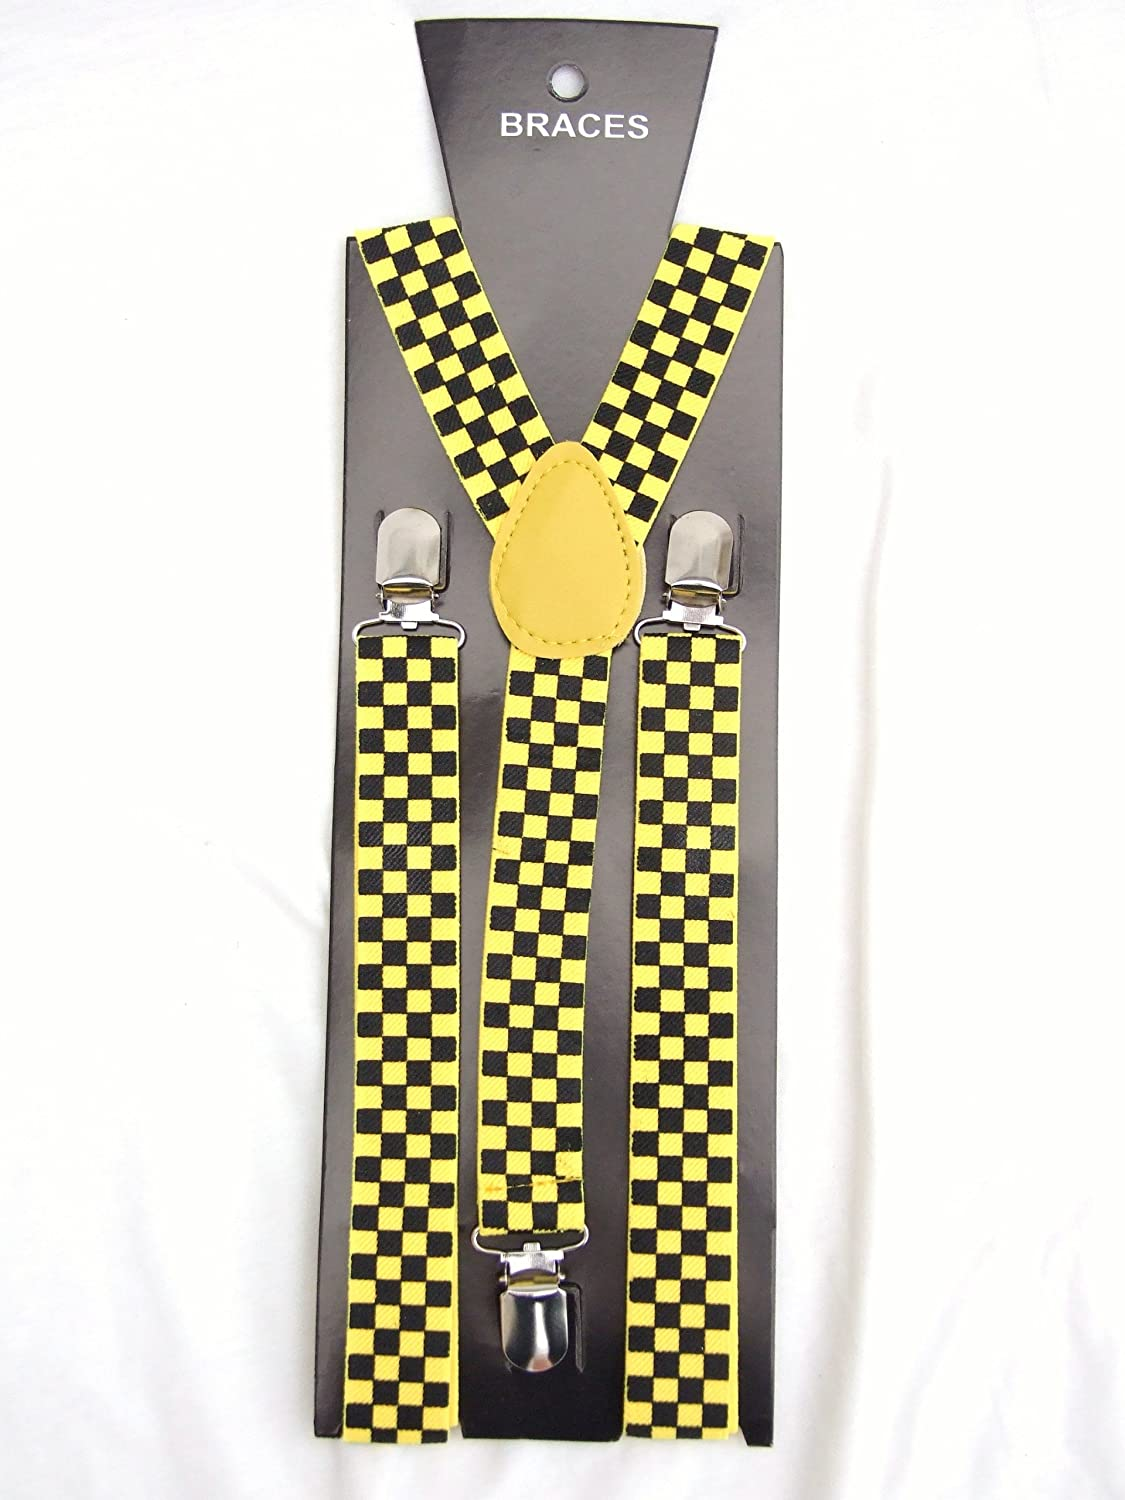 Pair Fashion Braces [suspenders] in a black and yellow check design.2.5cm wide ,Adjustable with metal adjusters and snap fasteners .